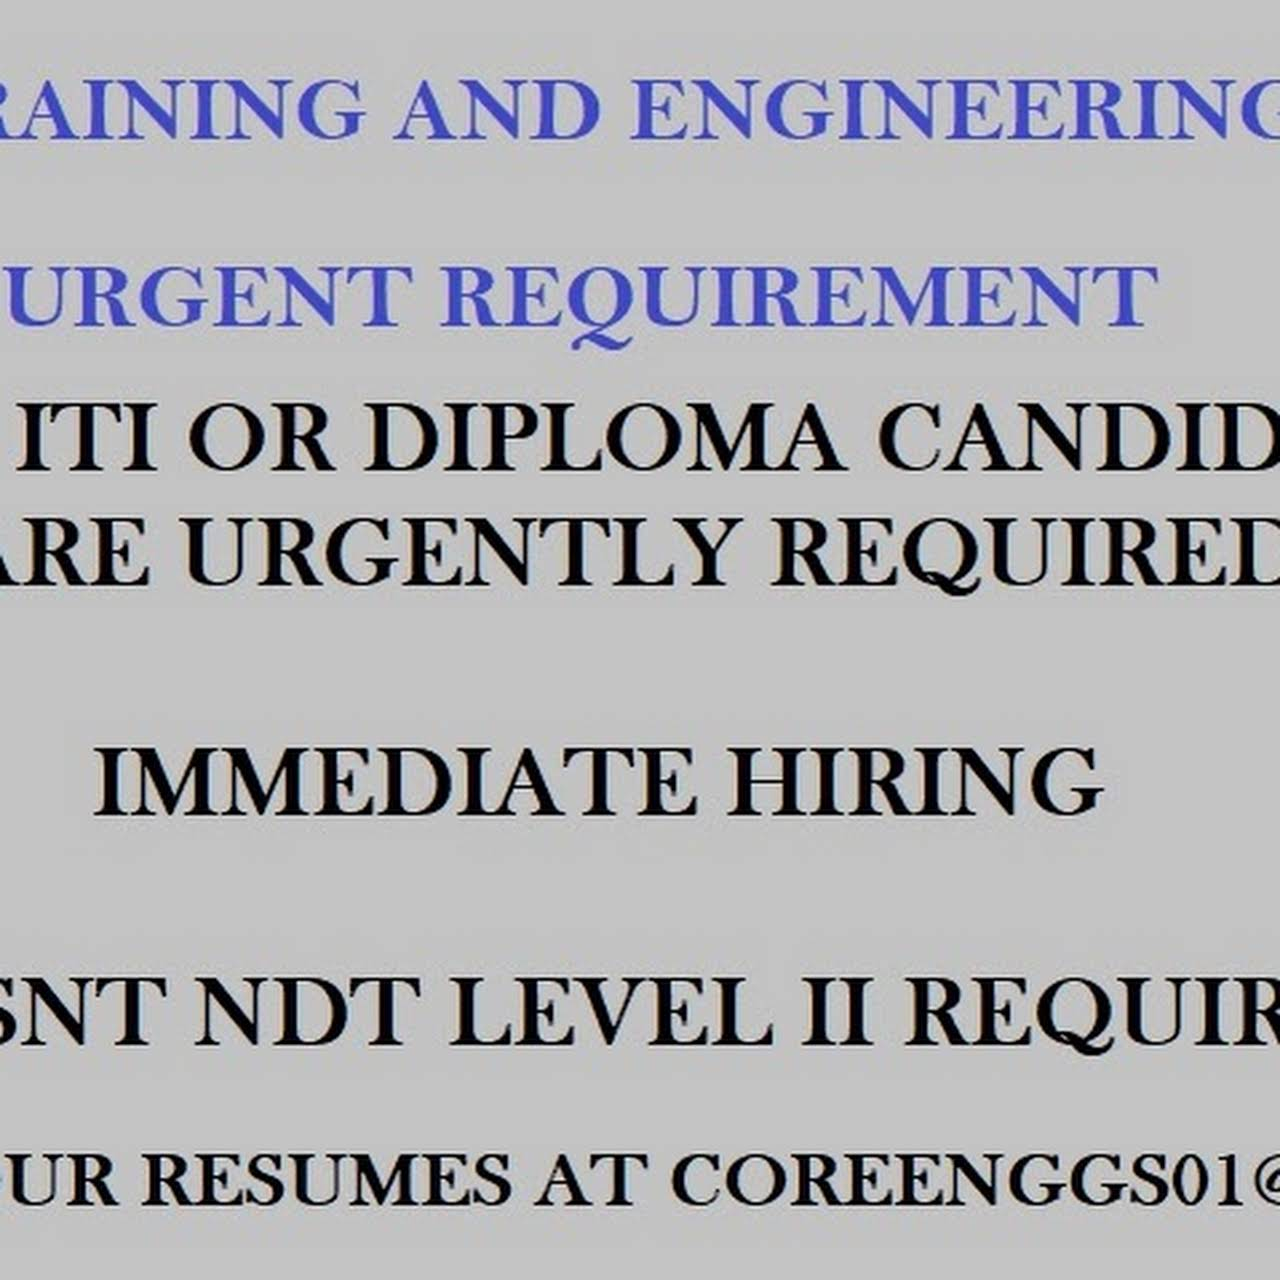 Core NDT Training & Engineering Services - Mechanical Engineering in